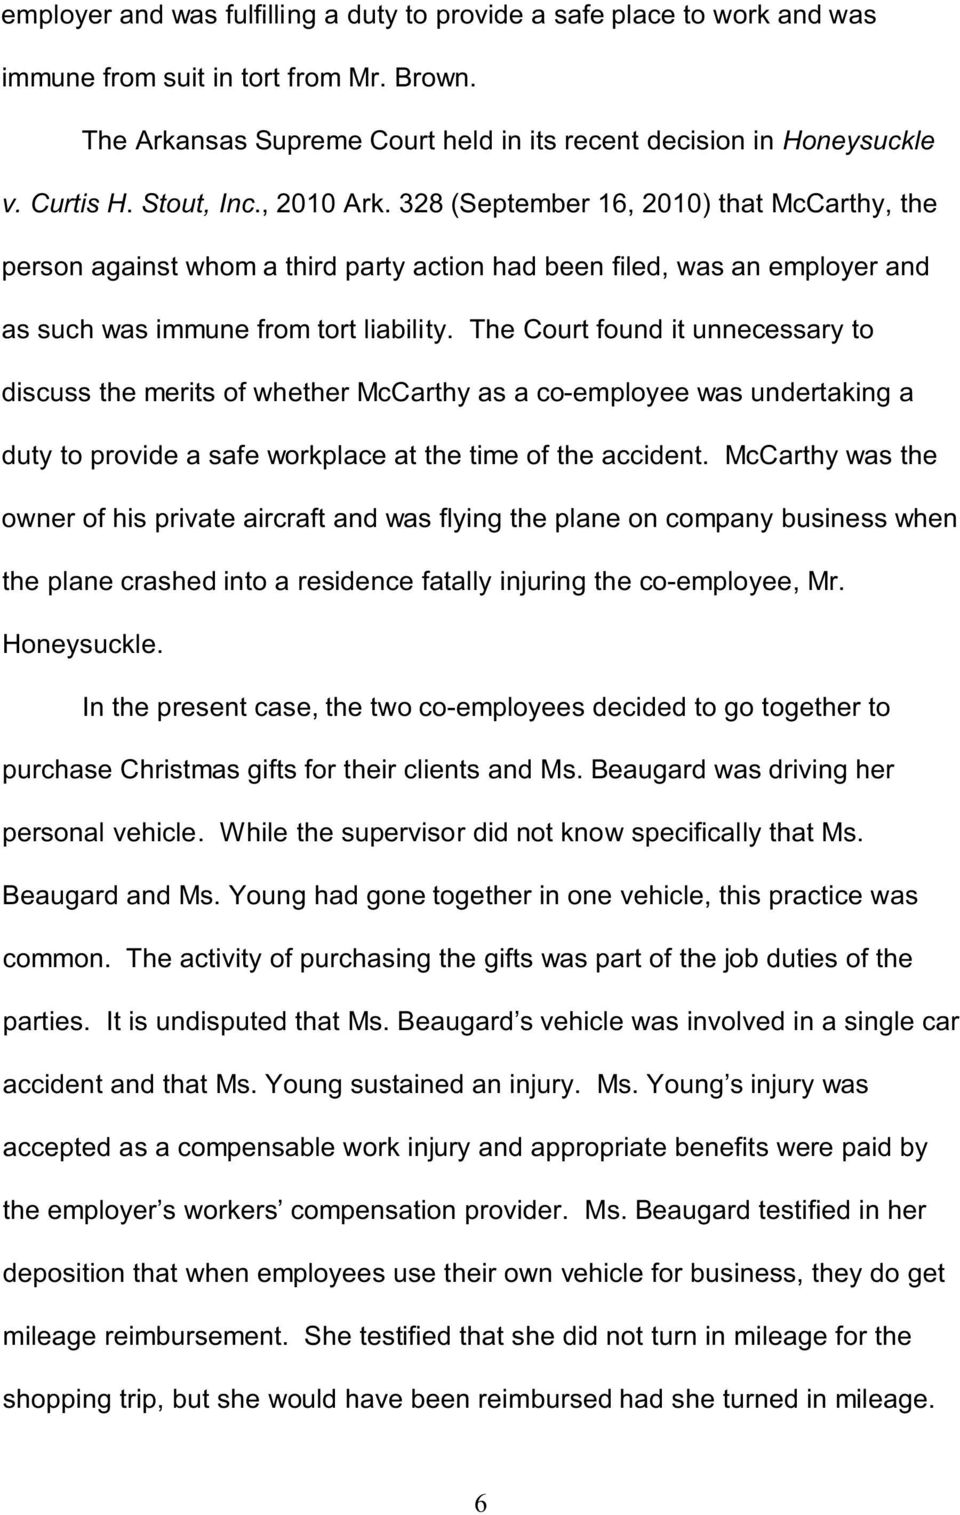 The Court found it unnecessary to discuss the merits of whether McCarthy as a co-employee was undertaking a duty to provide a safe workplace at the time of the accident.